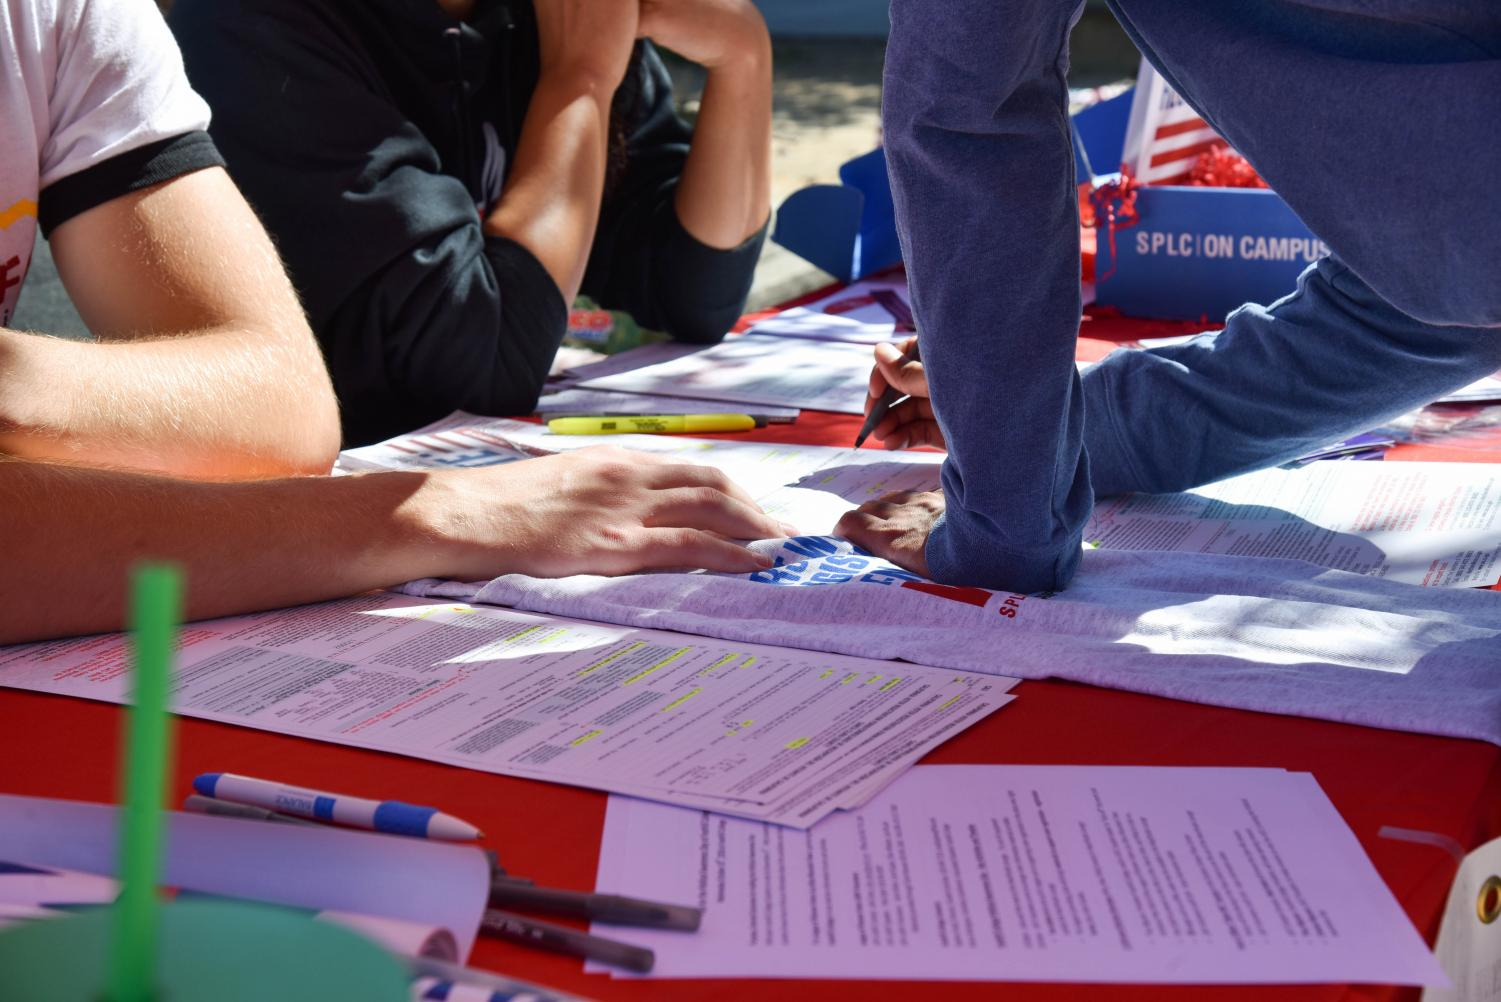 A student fills out registration papers during Political Awareness Day at Foothill College.